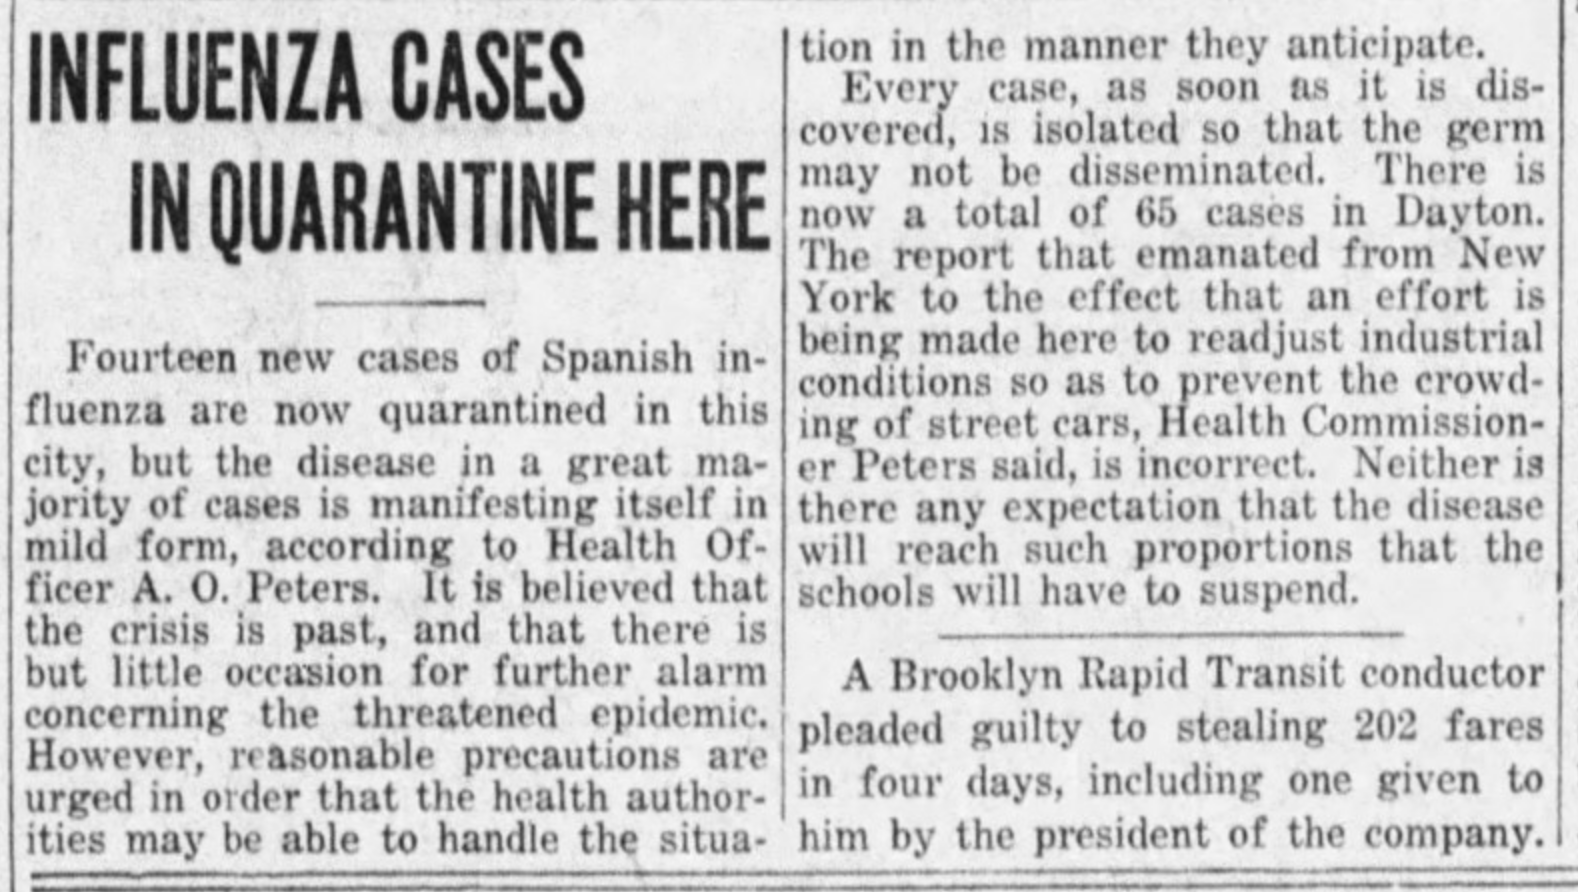 Oct 4, 1918, news story on the flu from the Dayton Daily News